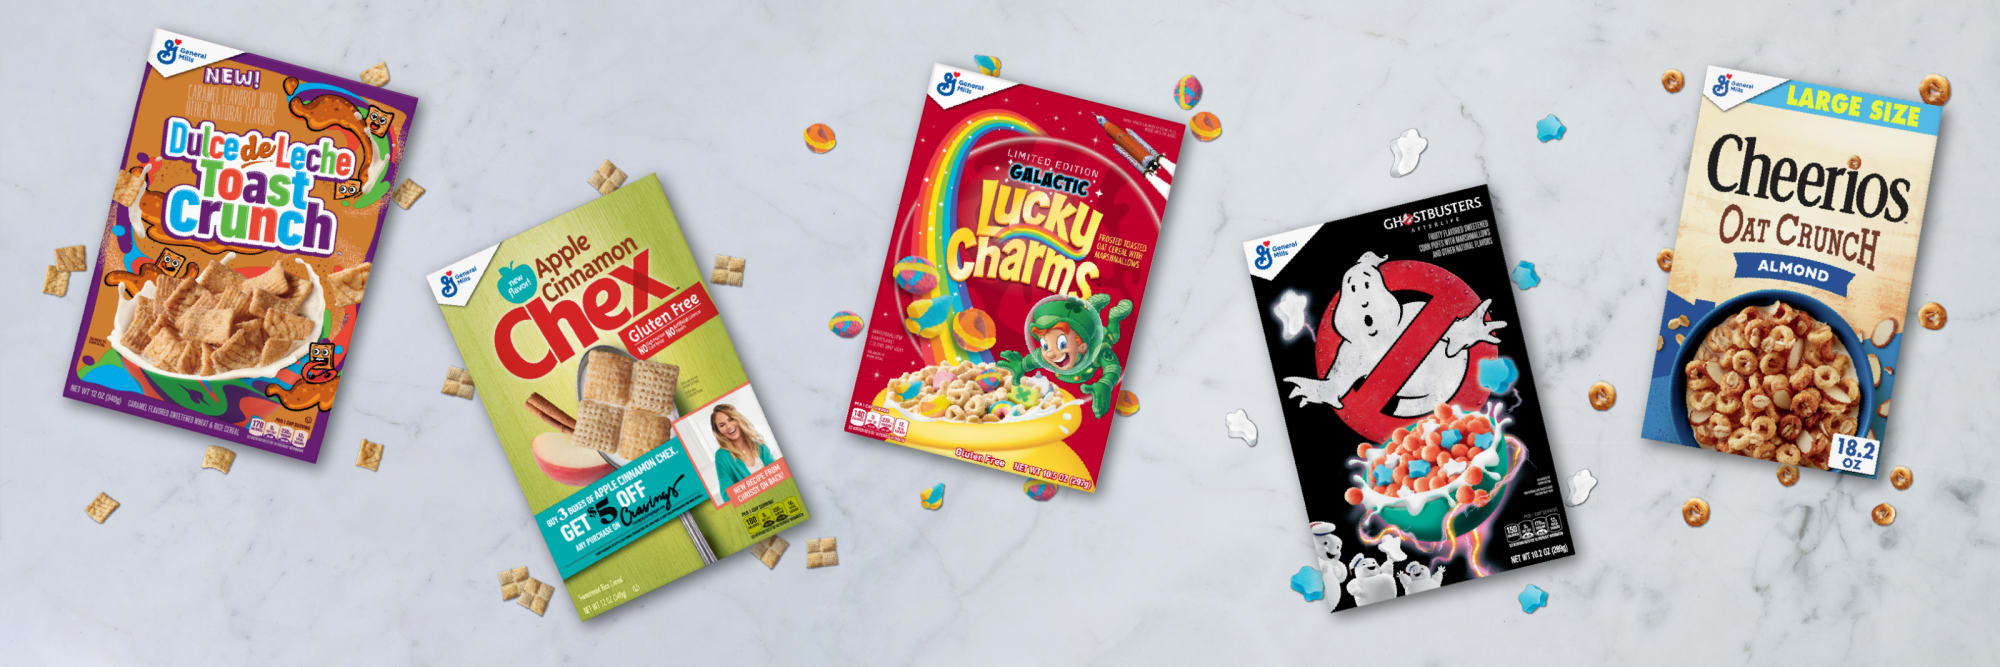 General Mills introduces 5 brand new cereals